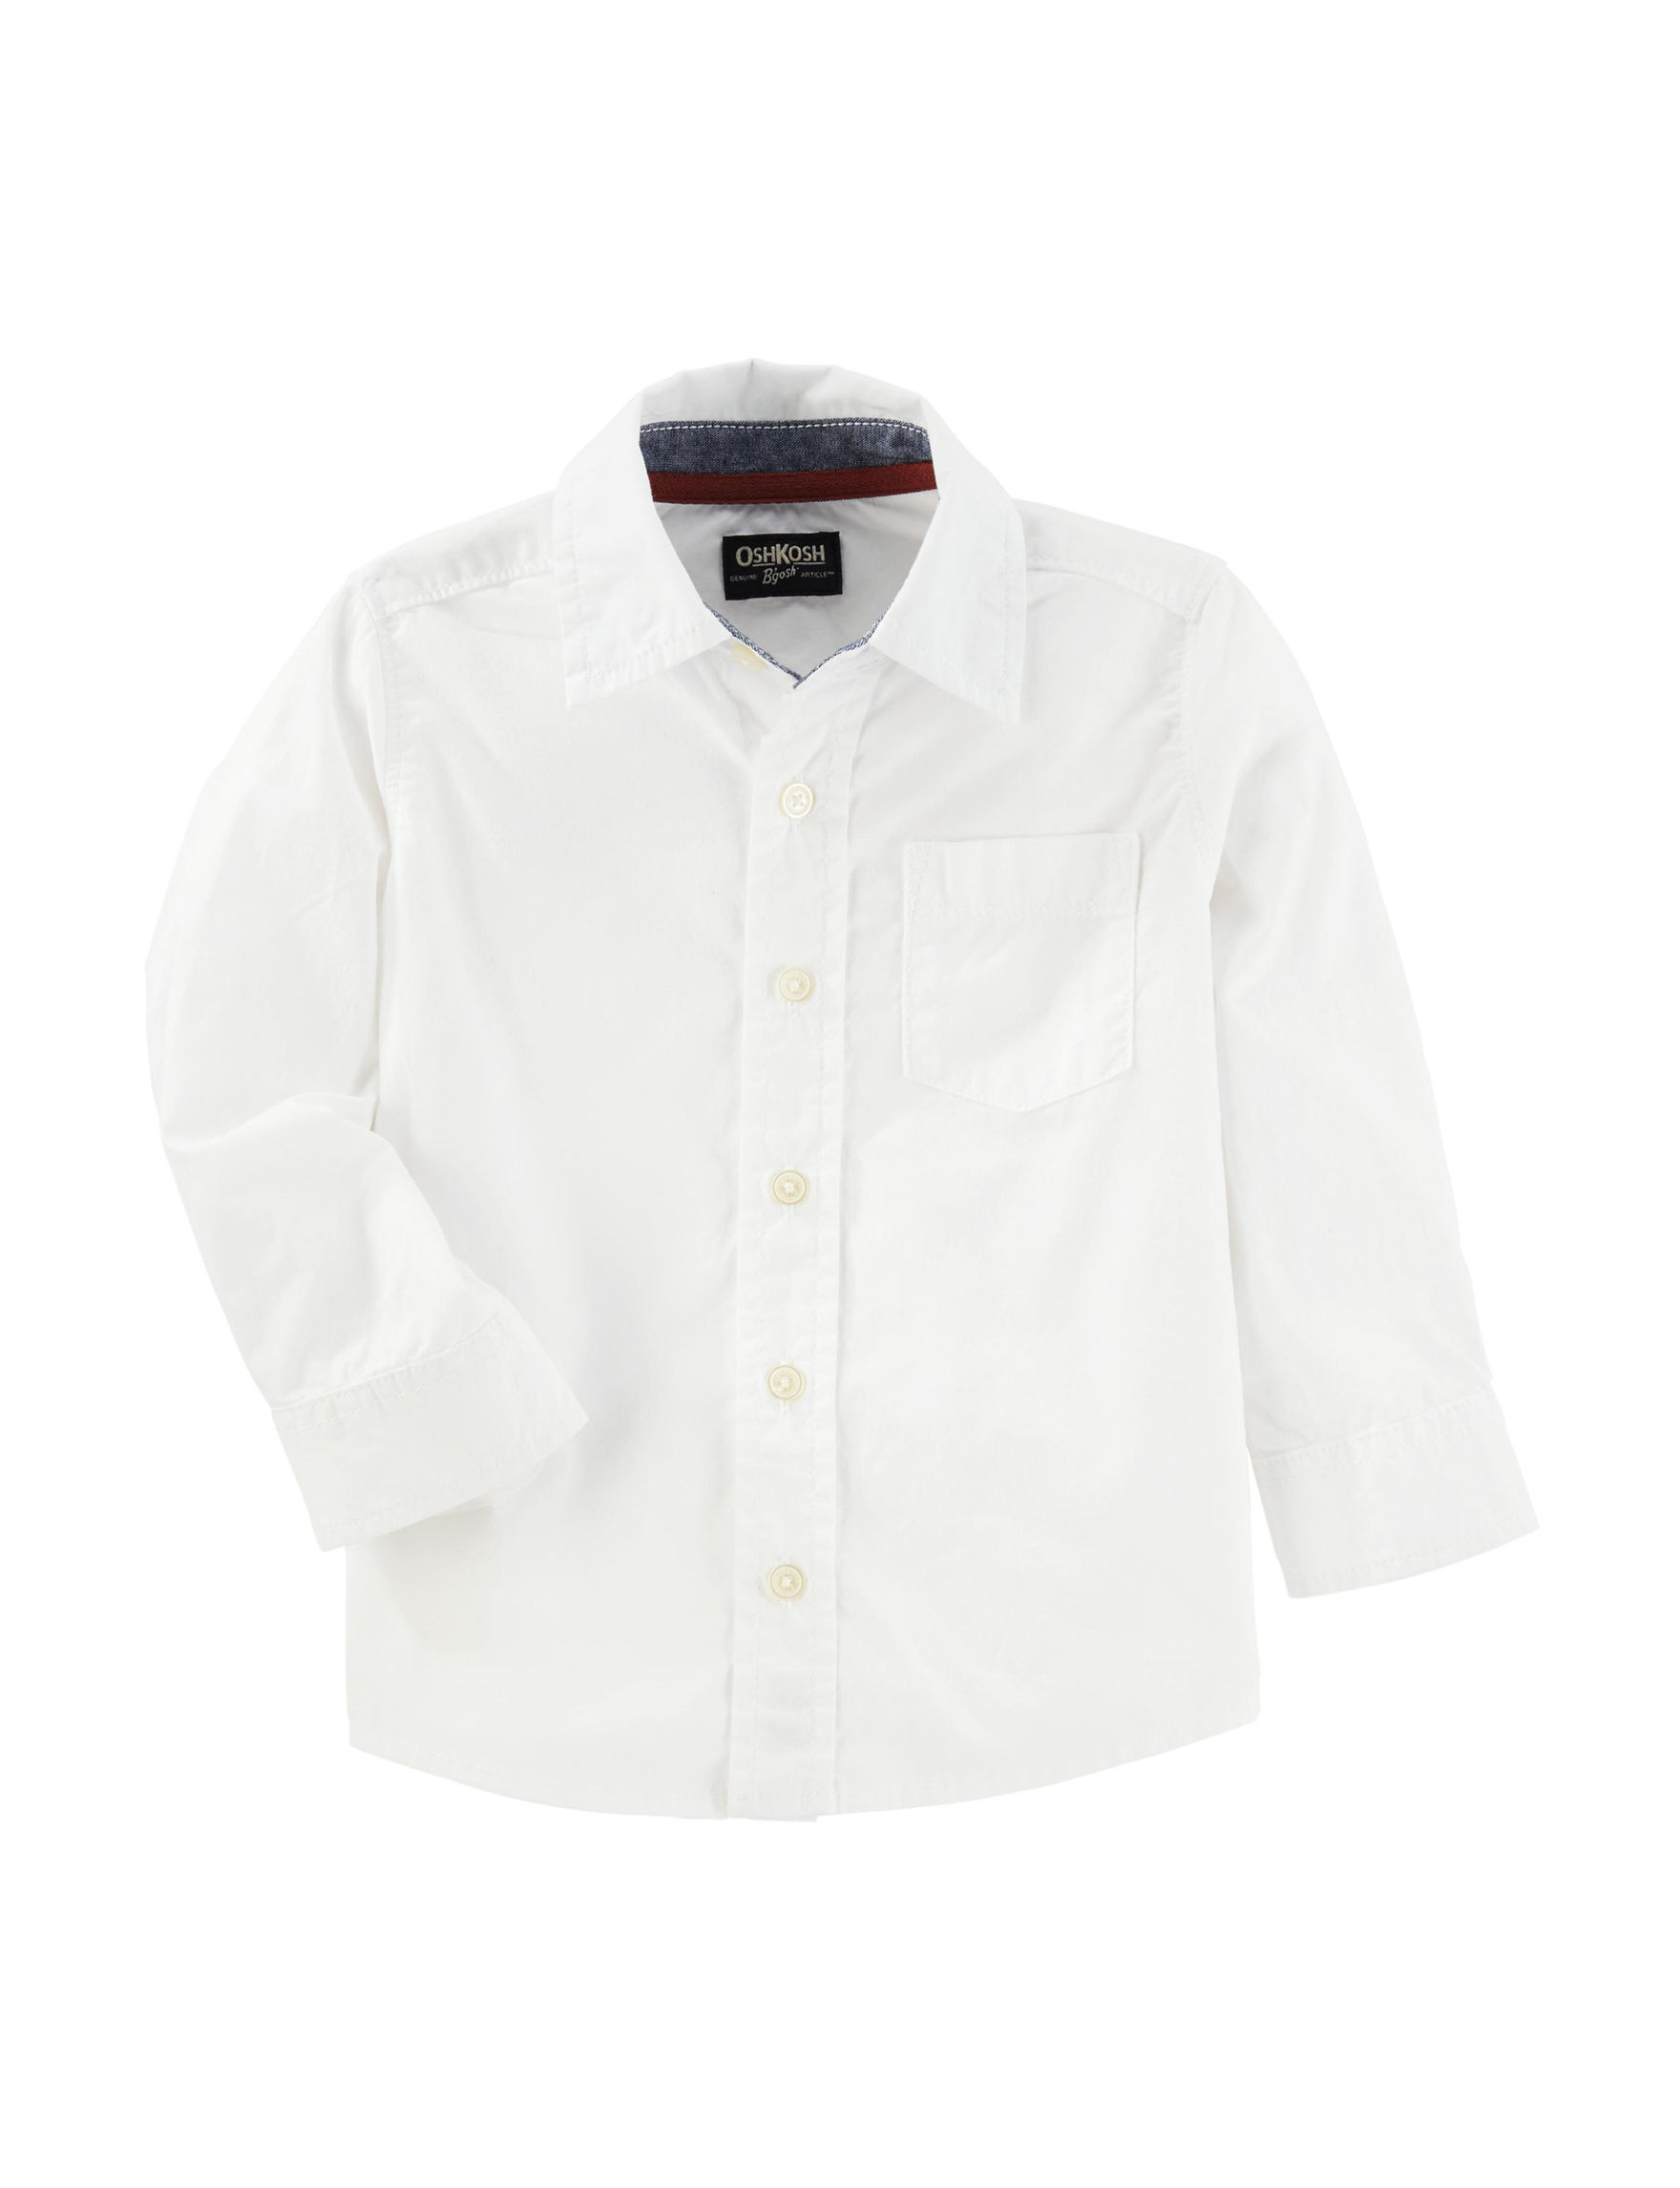 Oshkosh B'Gosh White Casual Button Down Shirts